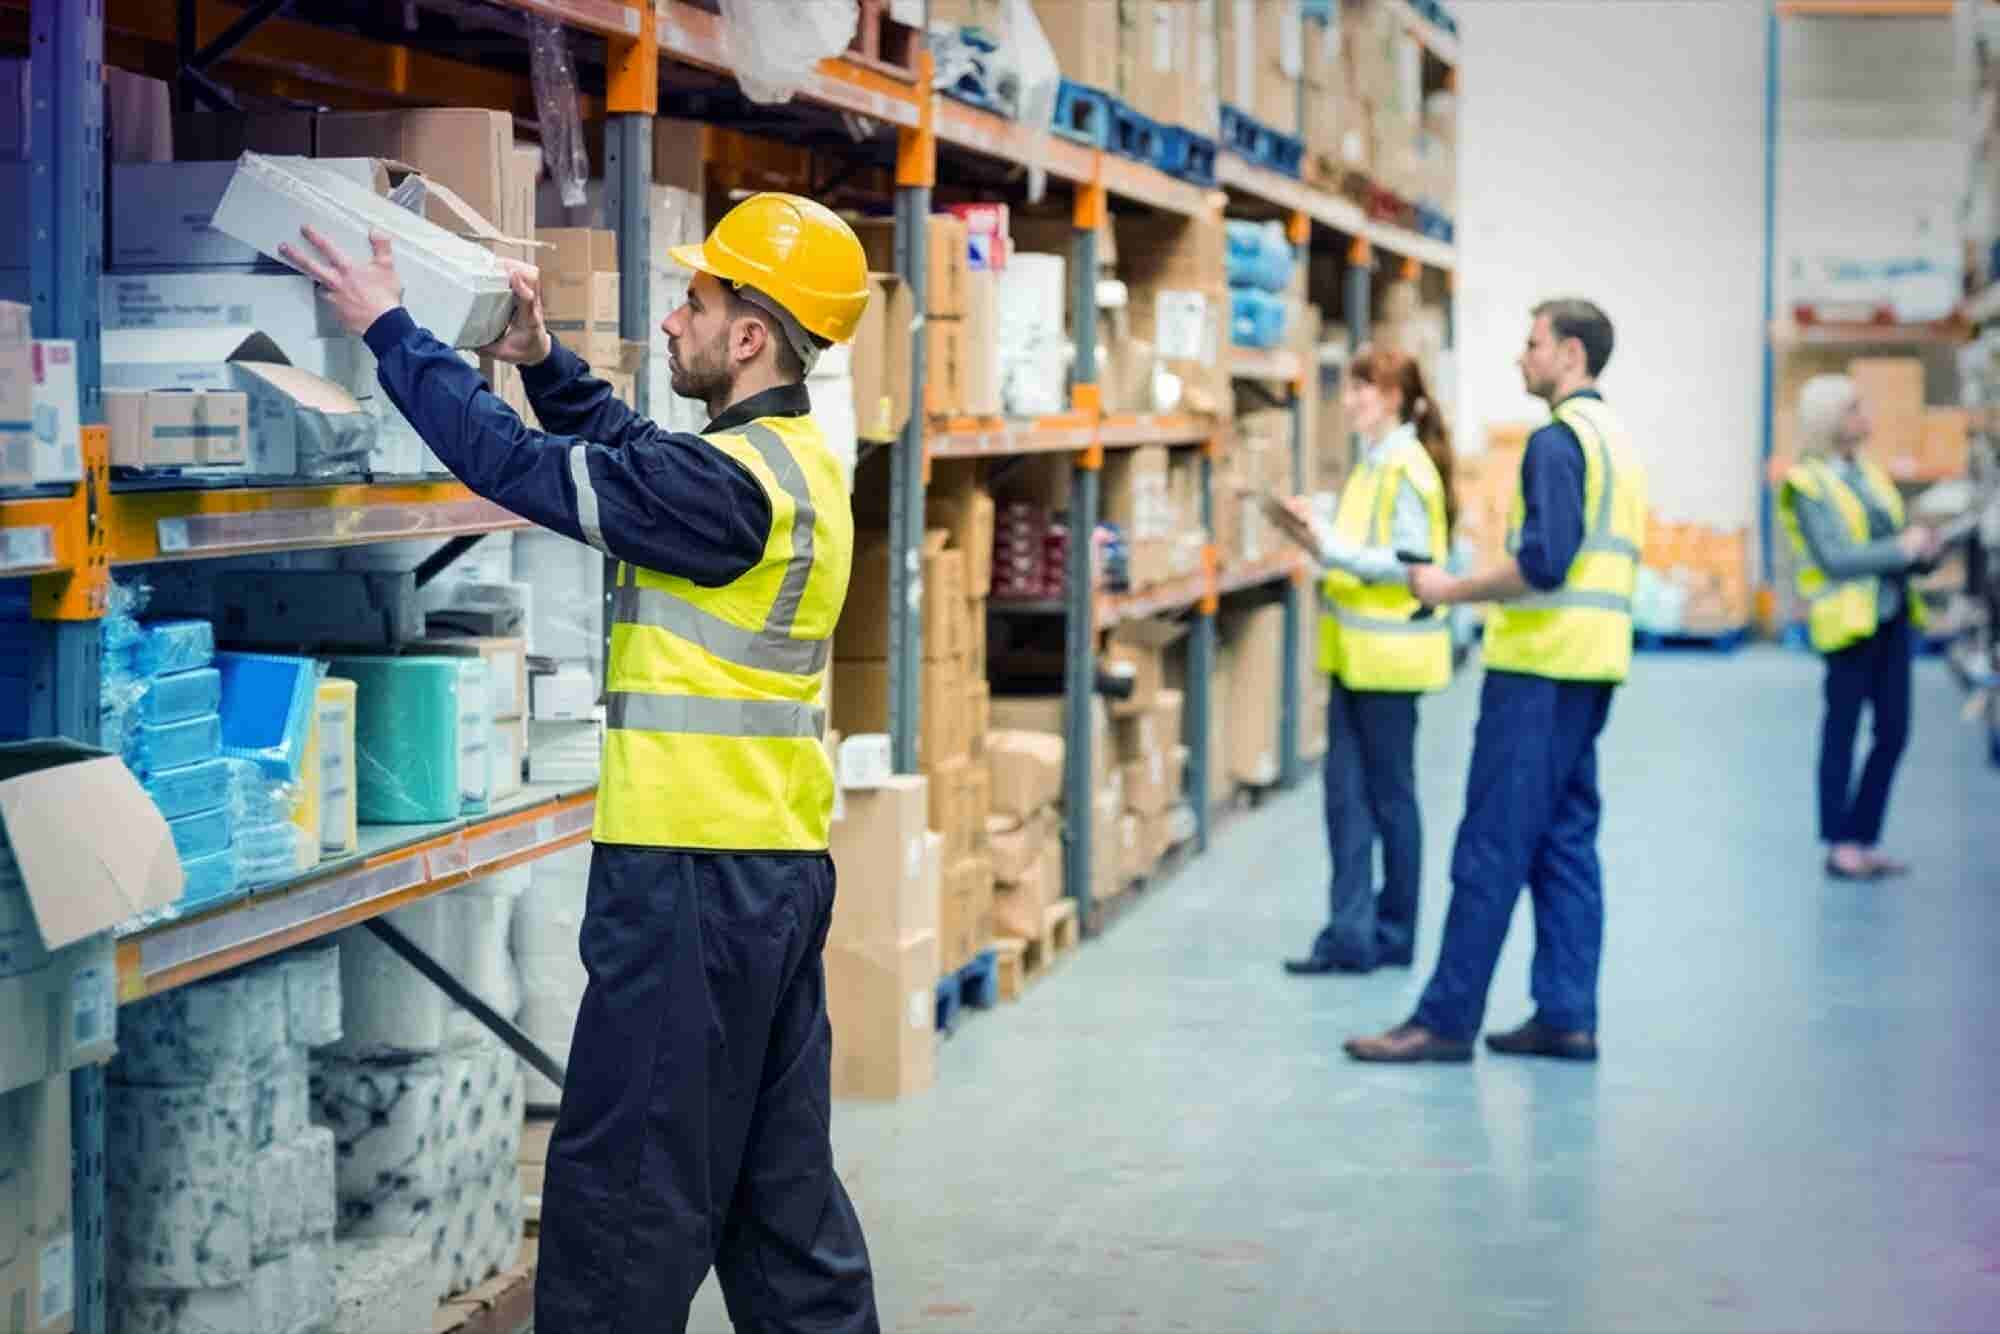 How can entrepreneurs effectively manage their business inventory?